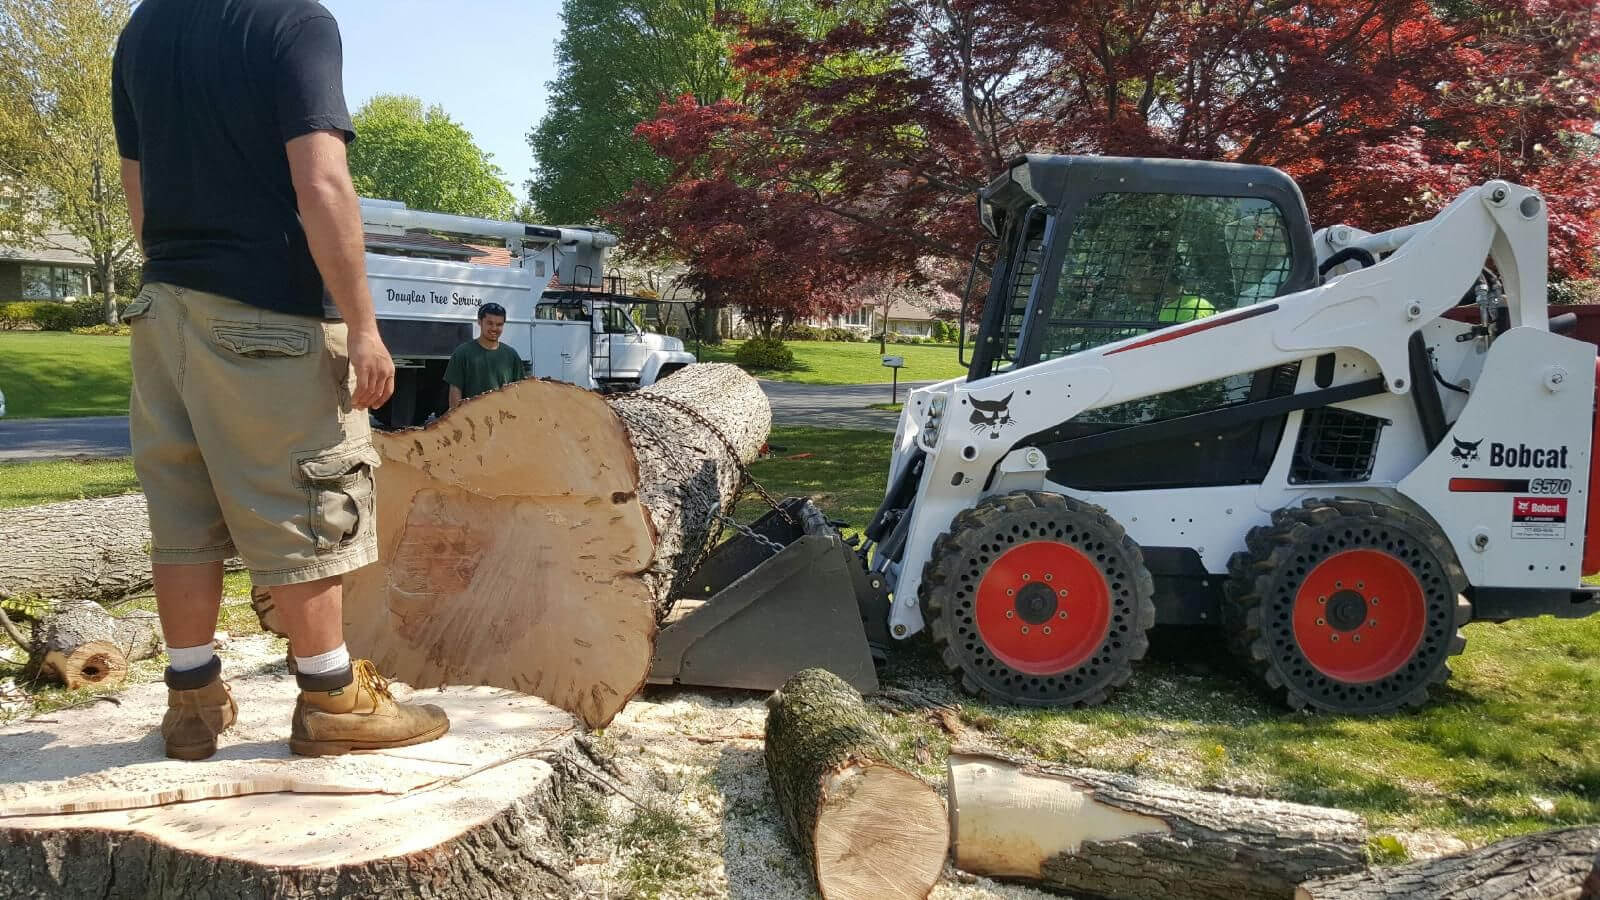 Services-Pembroke Pines FL Tree Trimming and Stump Grinding Services-We Offer Tree Trimming Services, Tree Removal, Tree Pruning, Tree Cutting, Residential and Commercial Tree Trimming Services, Storm Damage, Emergency Tree Removal, Land Clearing, Tree Companies, Tree Care Service, Stump Grinding, and we're the Best Tree Trimming Company Near You Guaranteed!